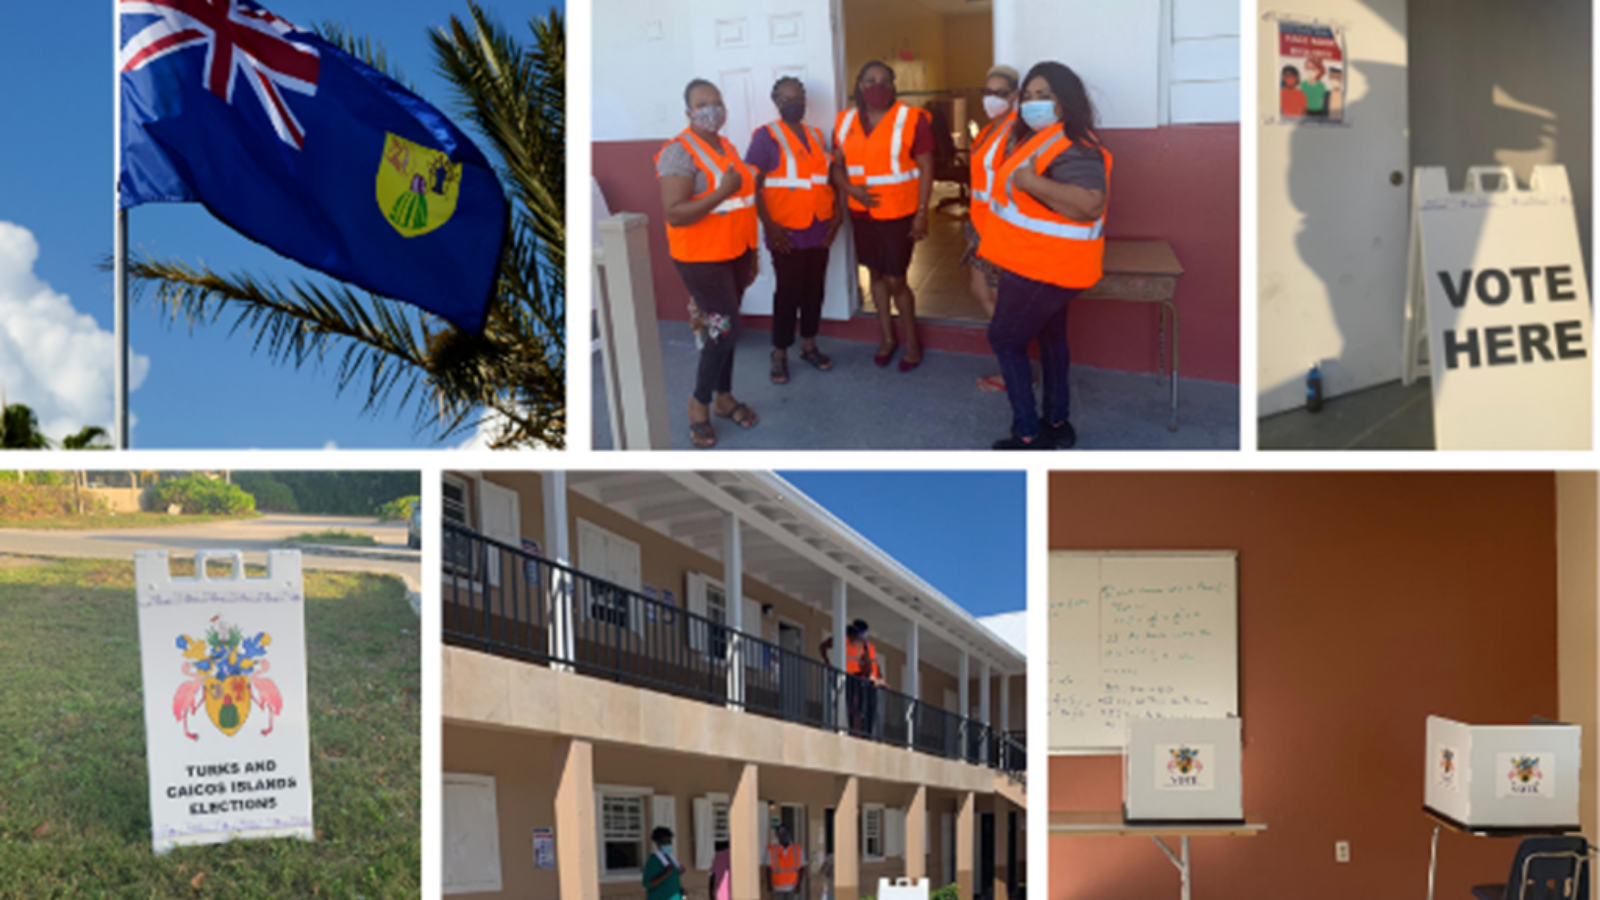 Images from the Turks and Caicos Islands General Election, February 2021